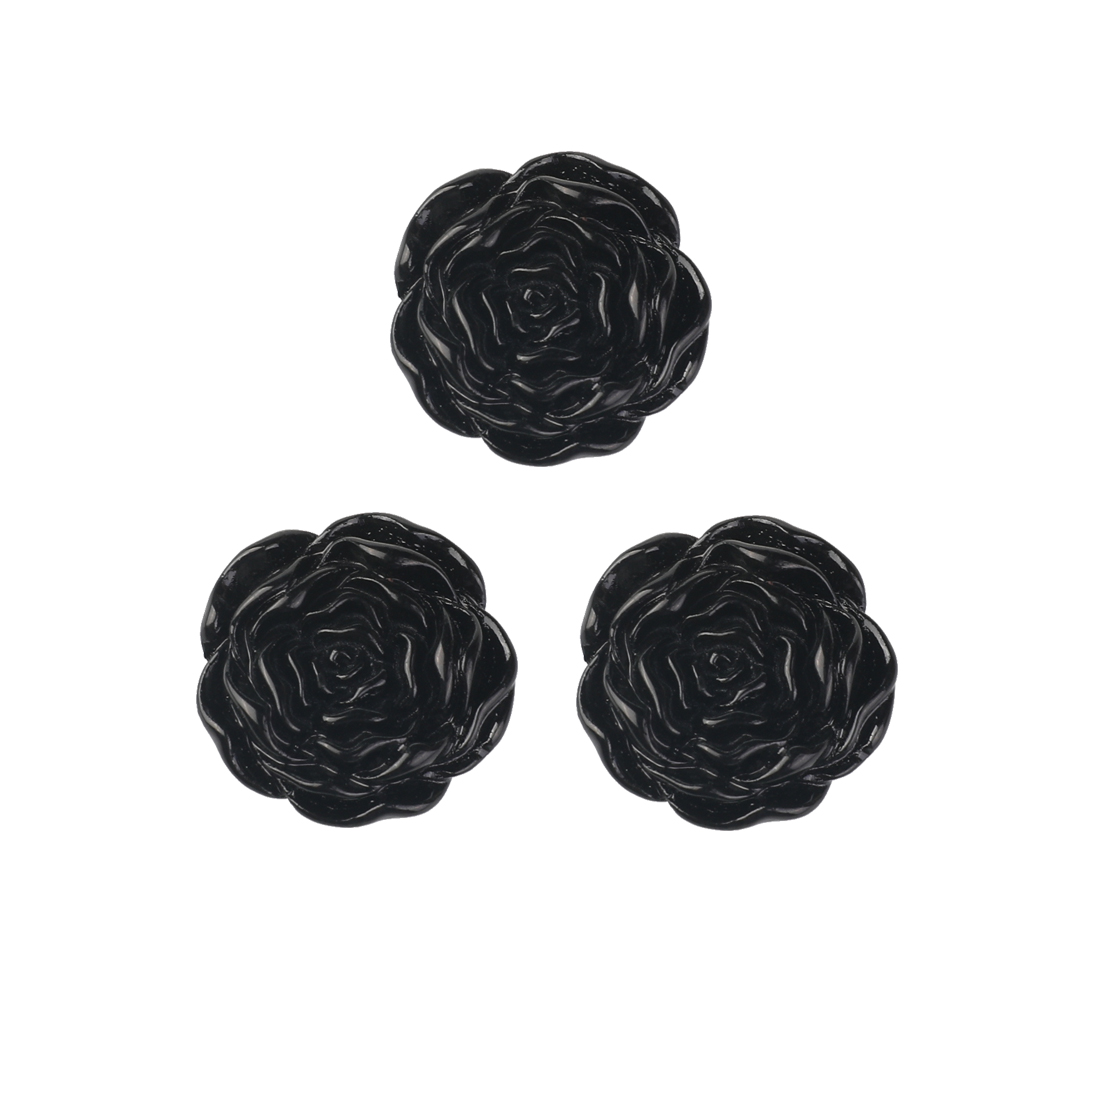 3 Pcs Plastic Rose Shape Sewing Craft Clothing Buttons Black